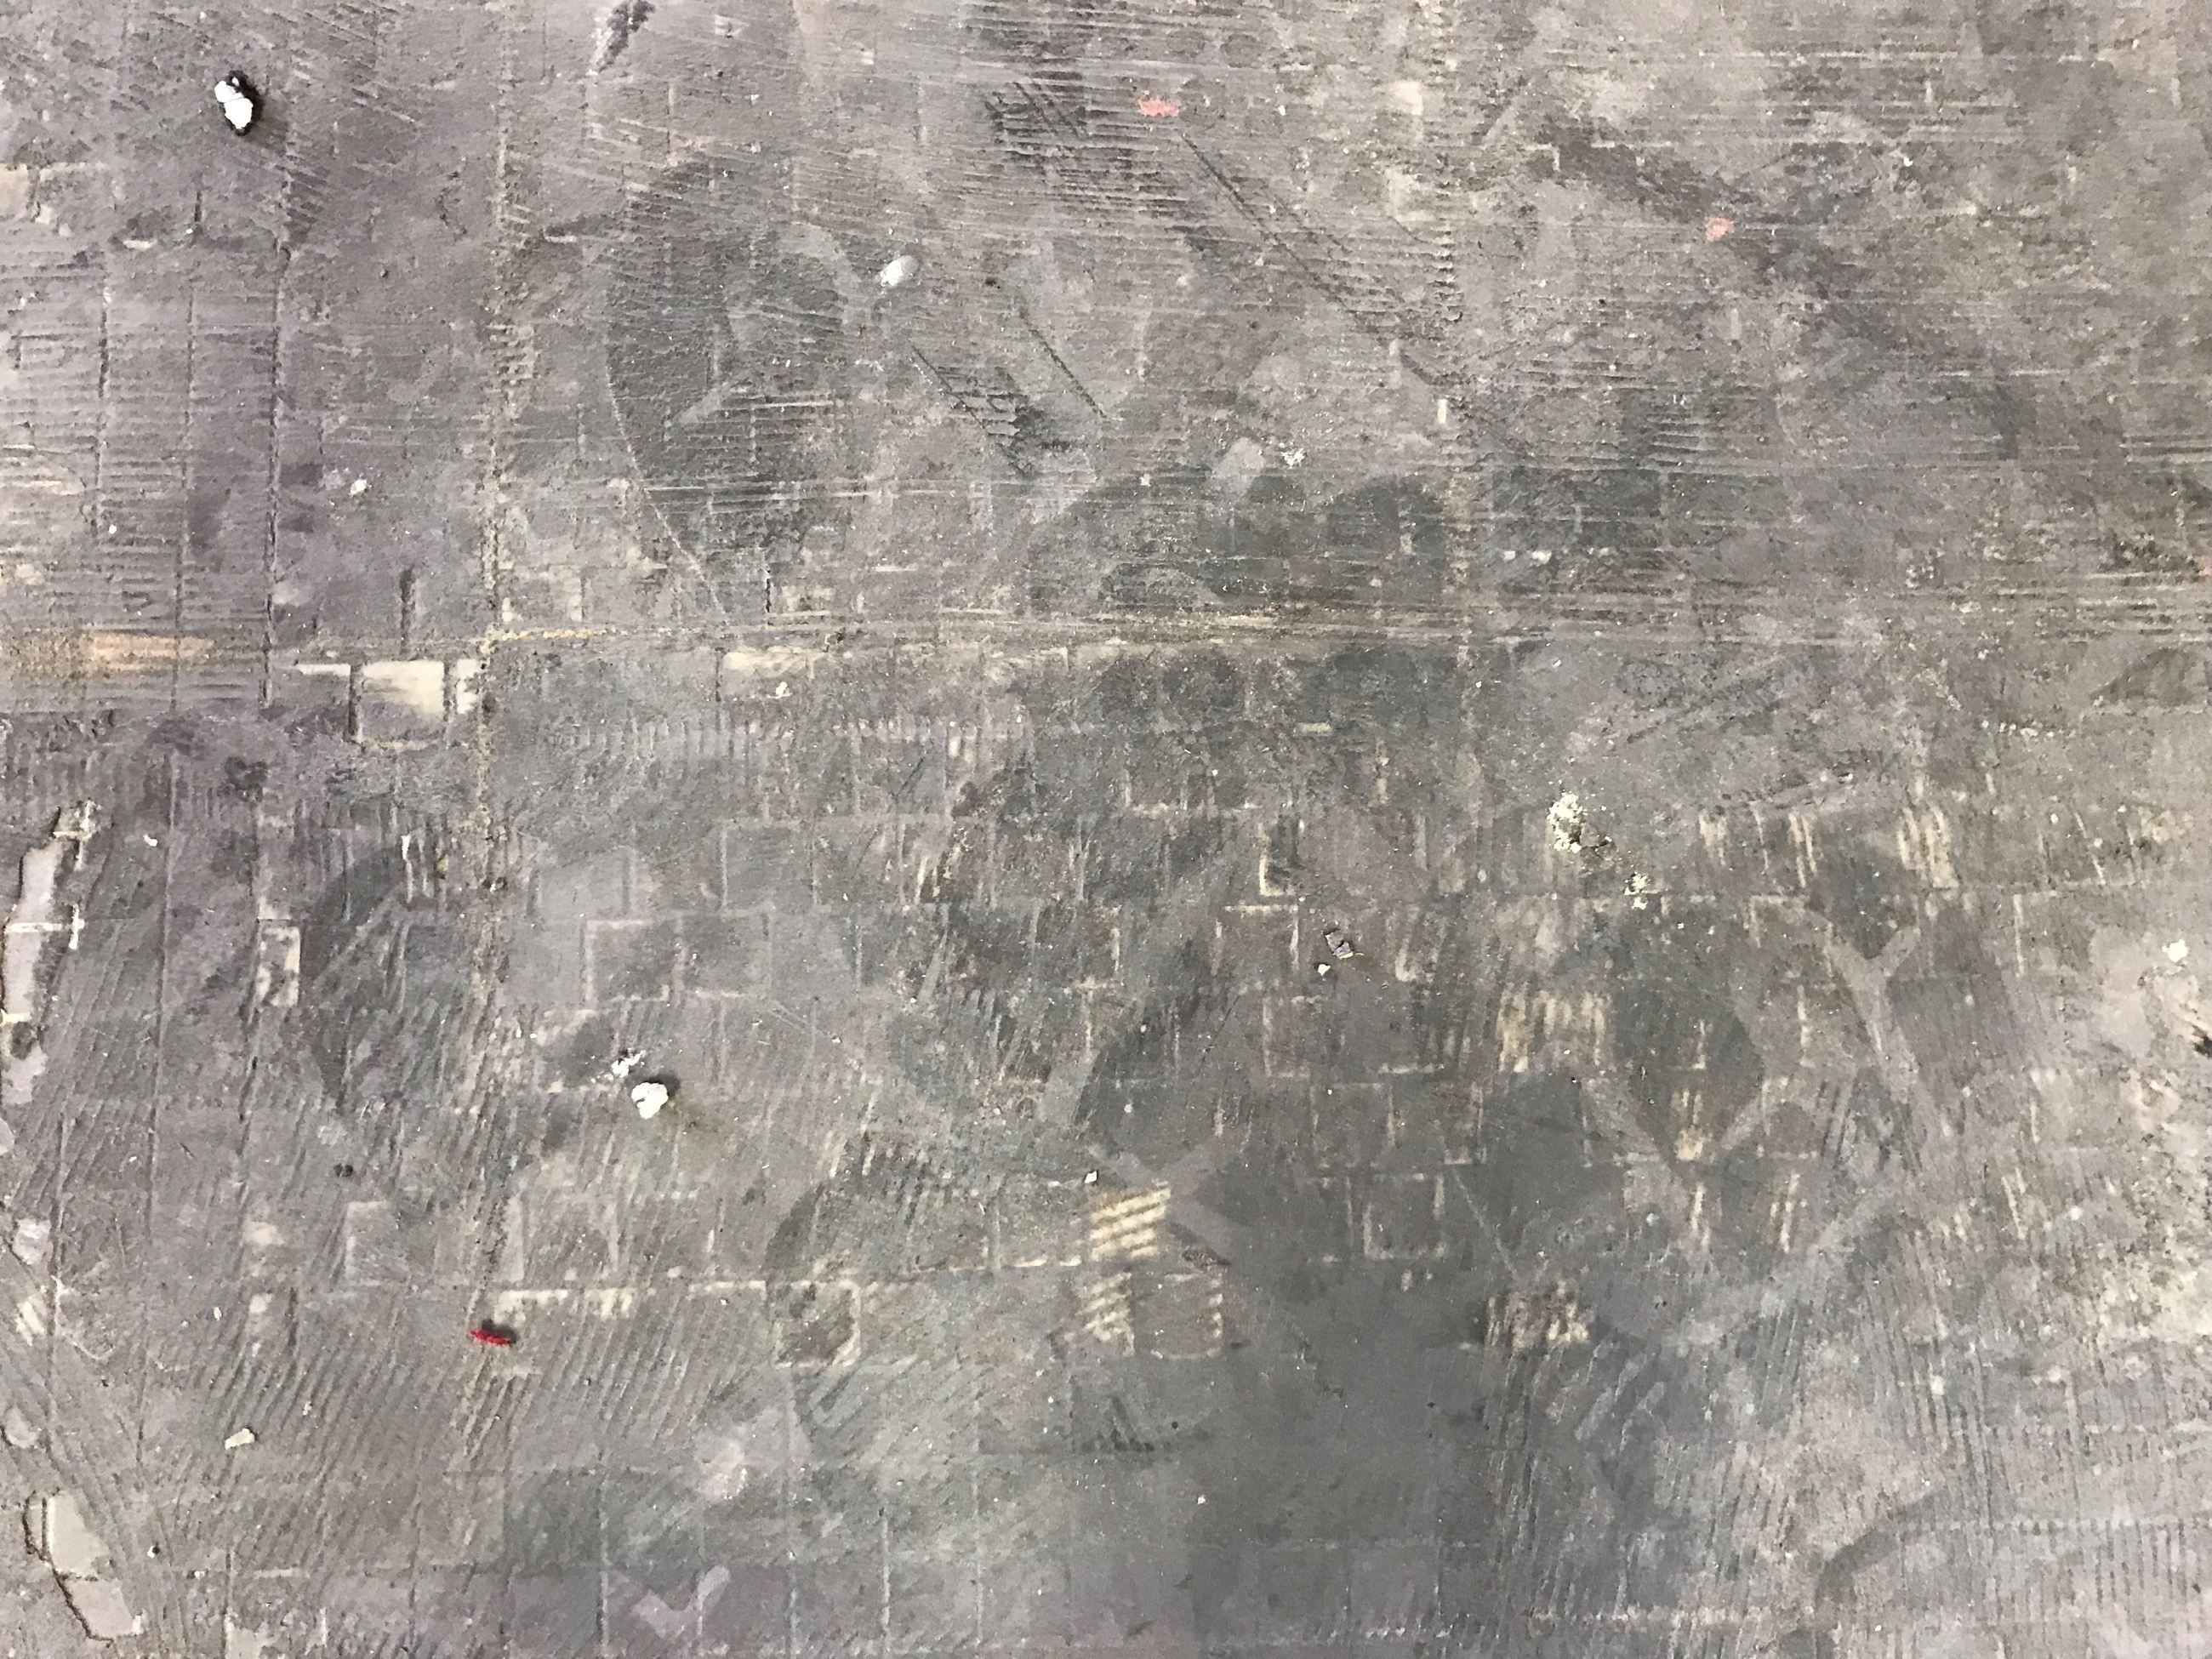 Mosaic Floor covered in Glue in Common Pleas Courtroom 11.28.18